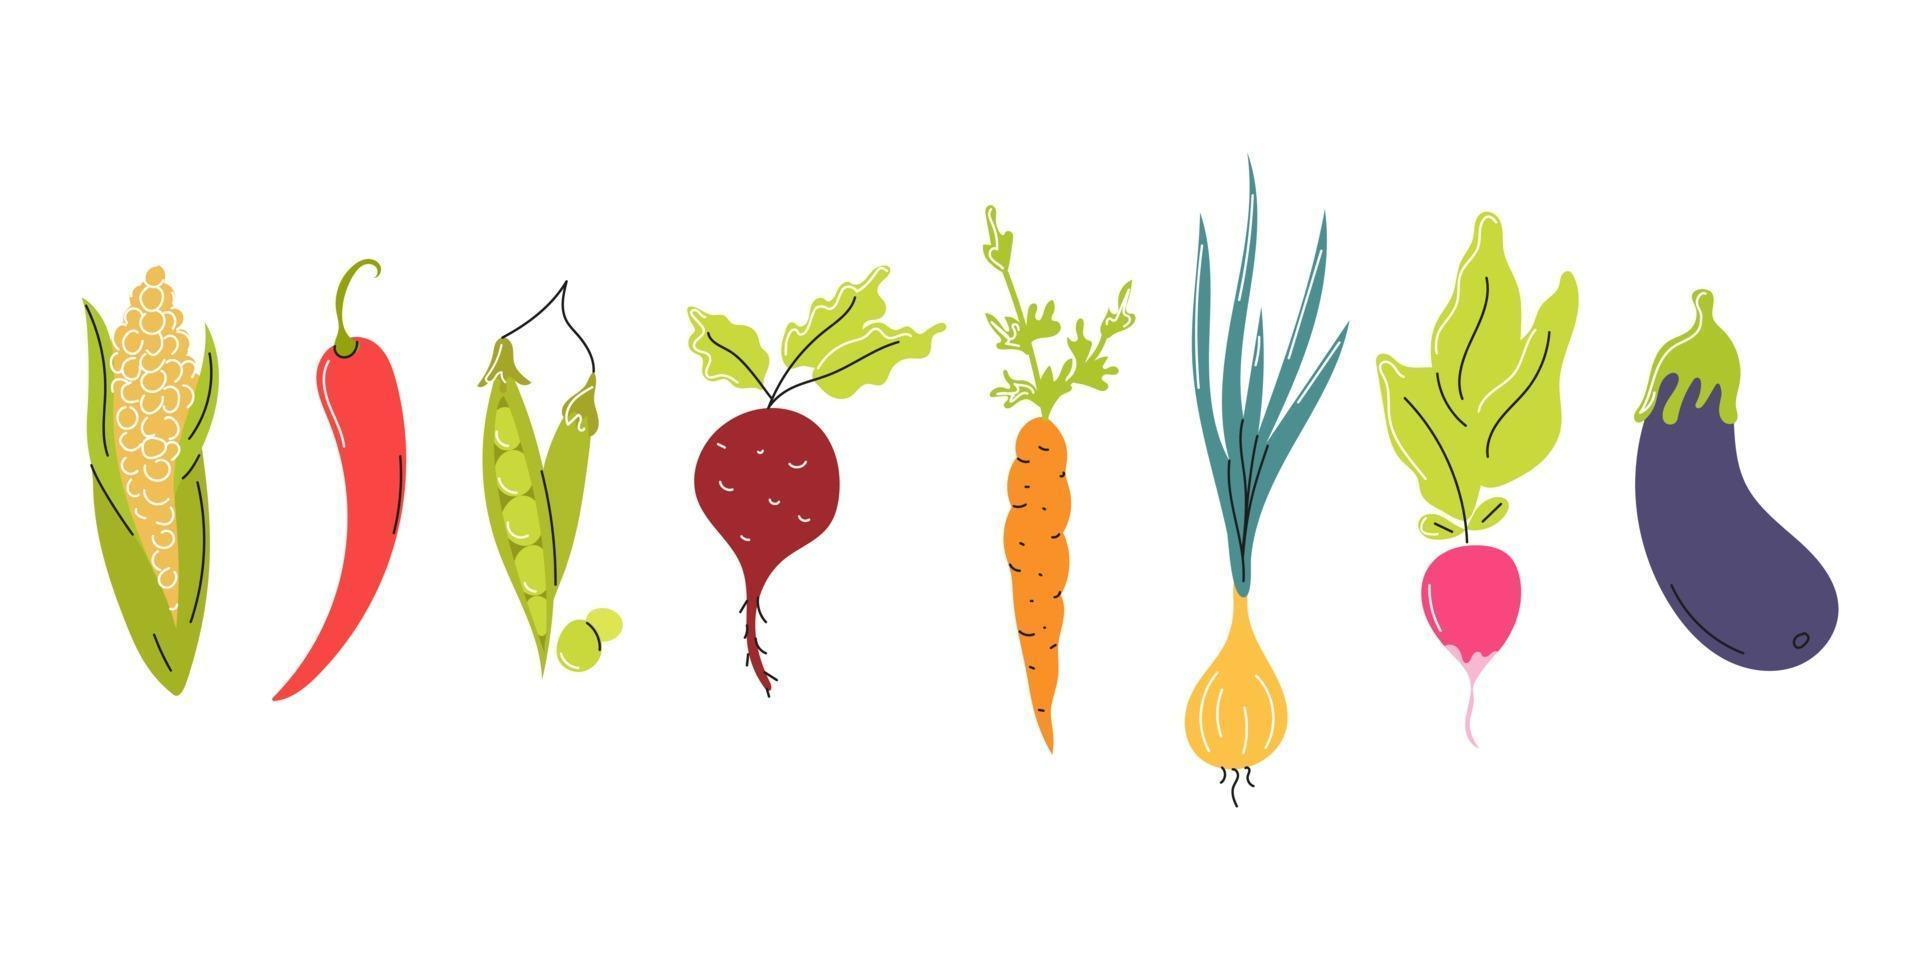 Set of fresh vegetables arranged in a row on a white background. Natural food, vegetarianism. Vector flat image, icon